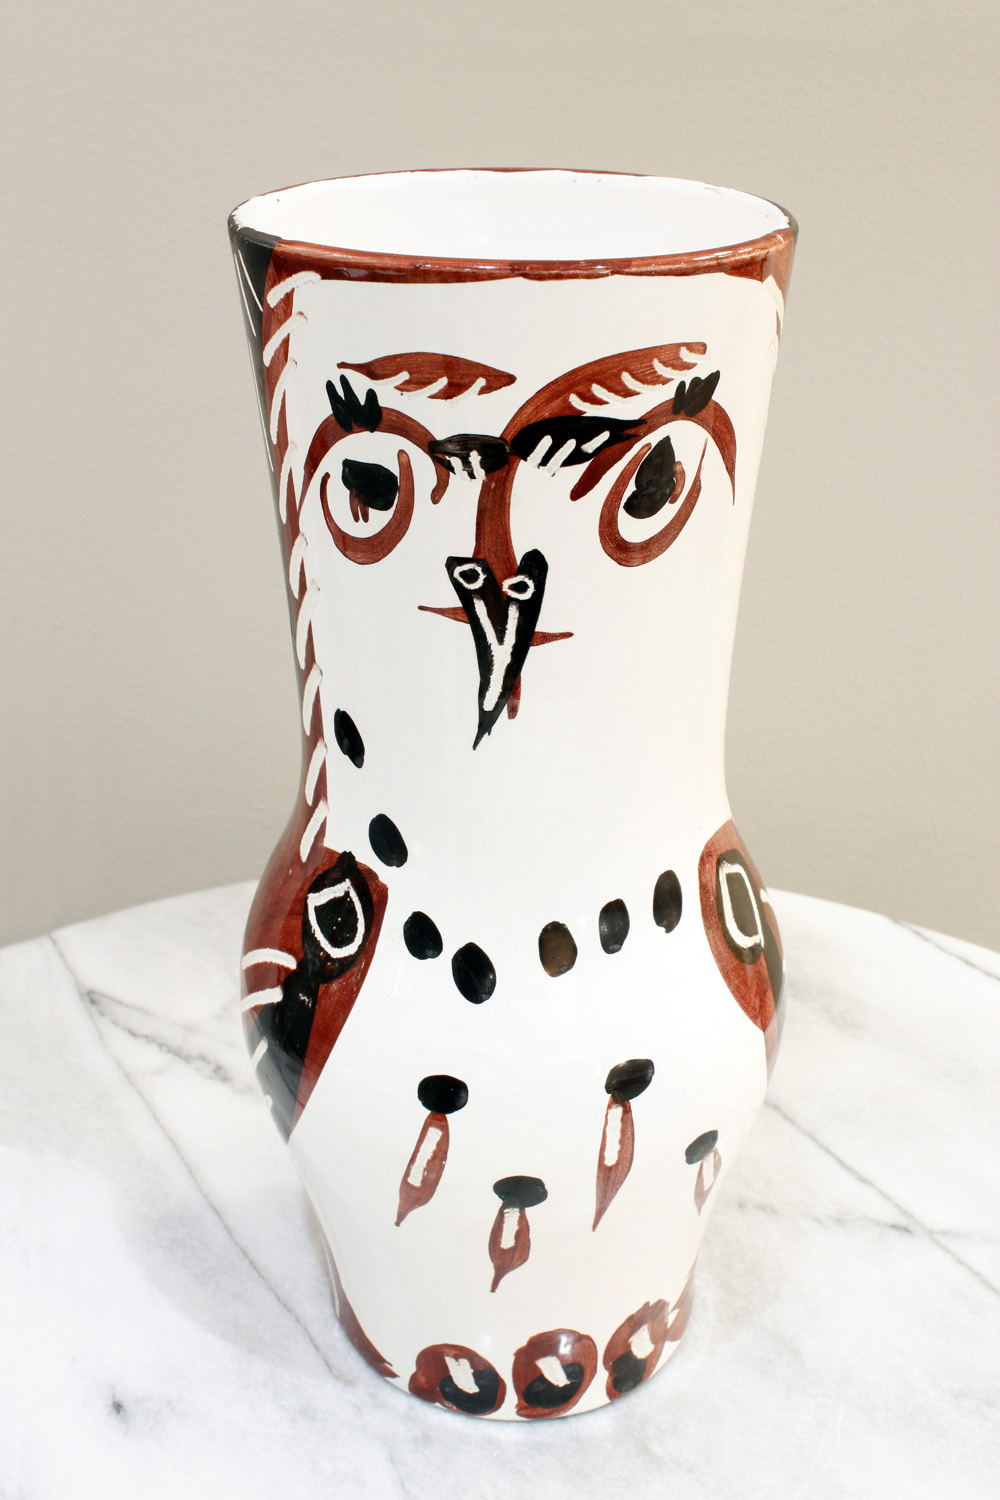 Picasso 200 lrg wood owl ceramic42 face2.jpg